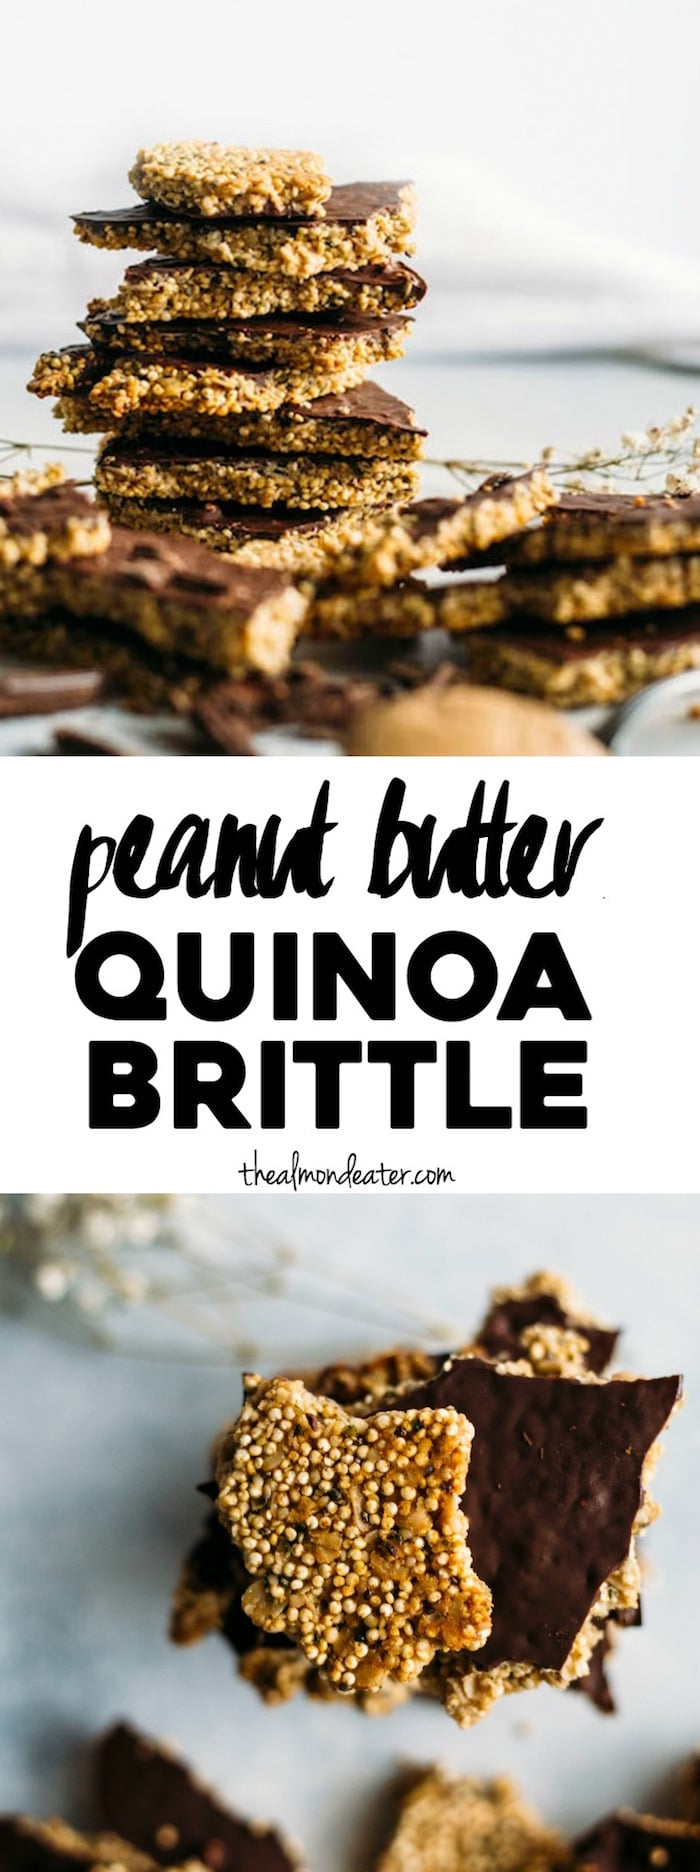 Peanut Butter Quinoa Brittle | A healthy snack packed with quinoa, superfoods and PEANUT BUTTER! | thealmondeater.com